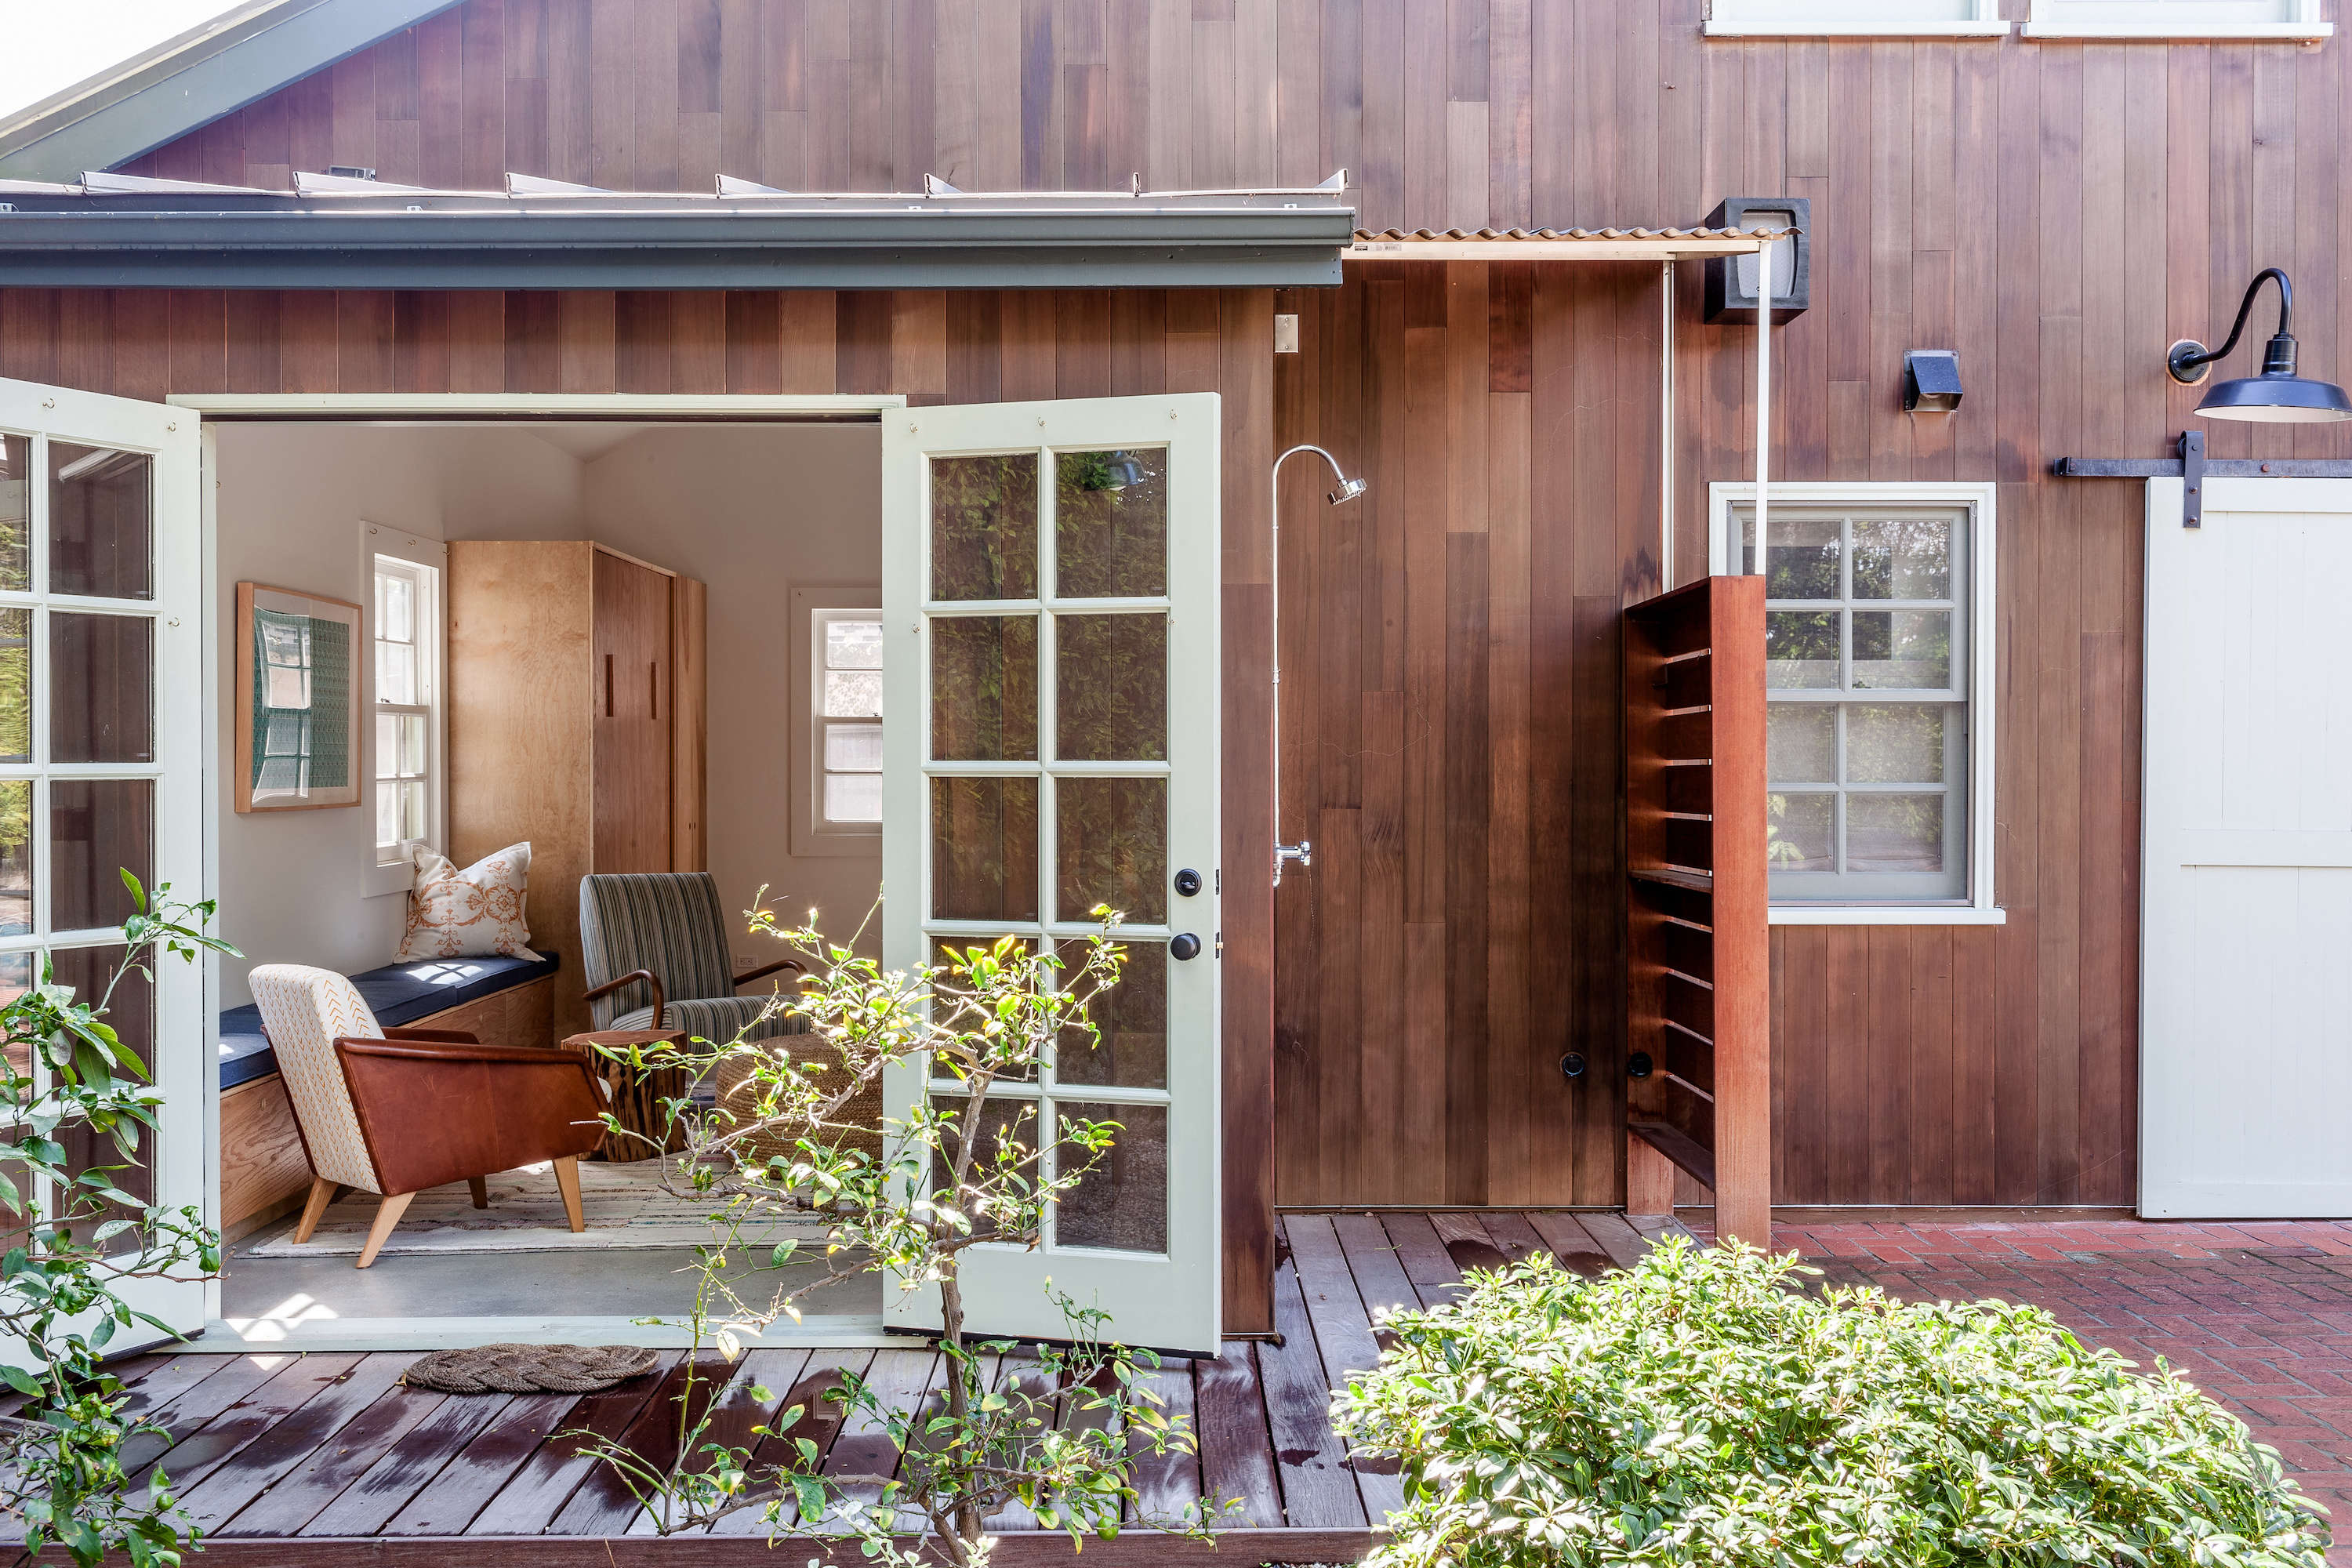 Small-Space Living: An Inspired Garage Conversion that Prioritizes Smart Storage